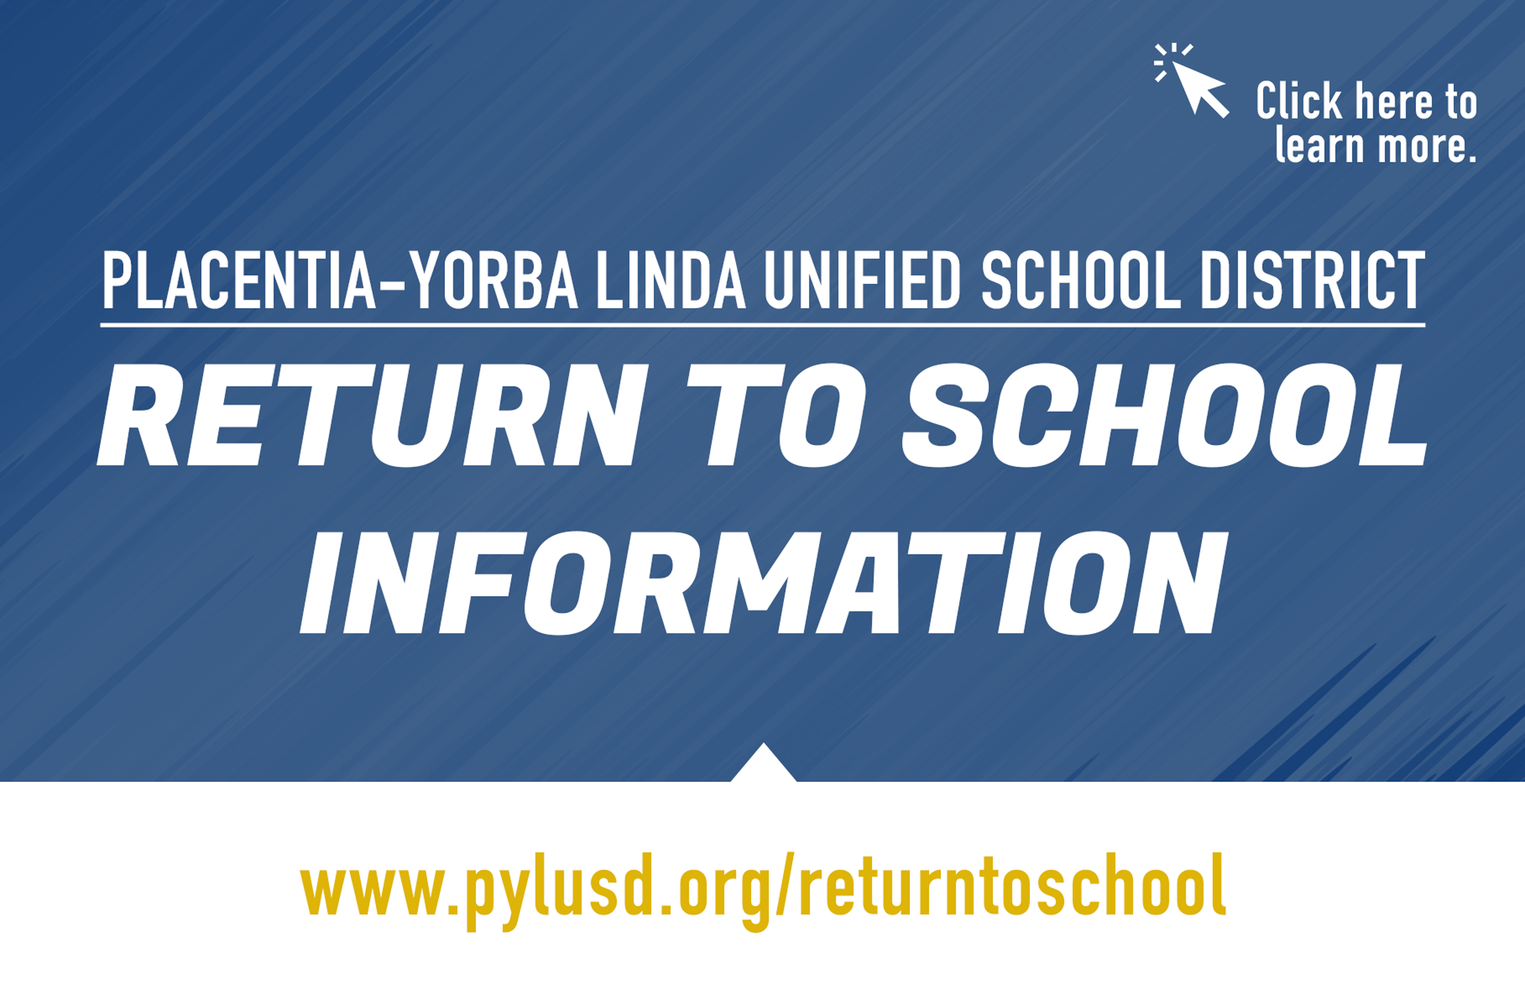 Return to School information.